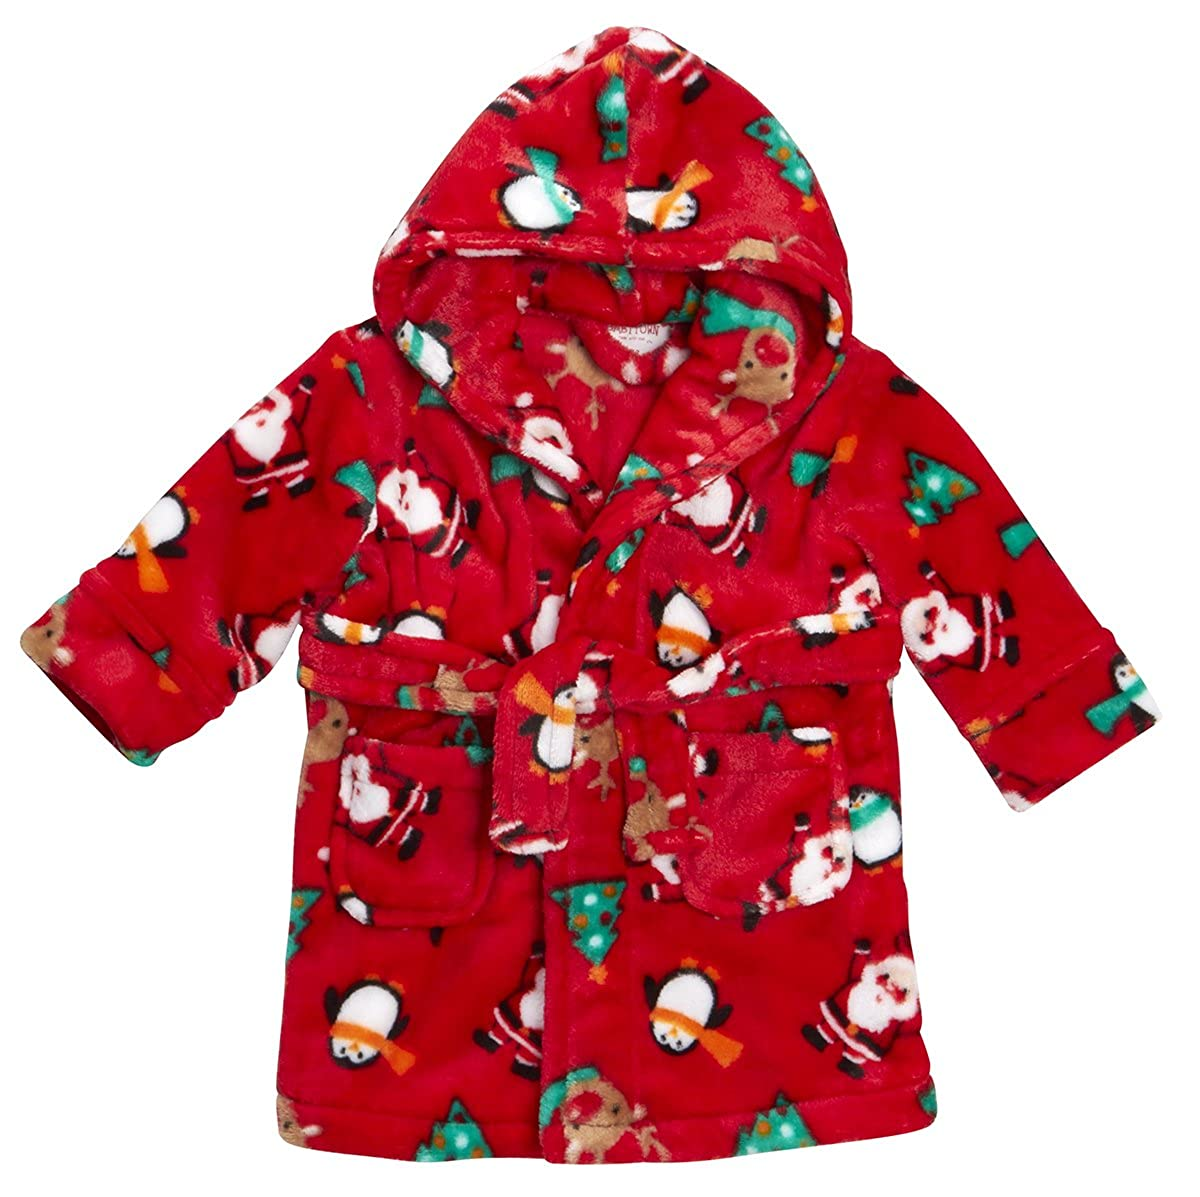 BABY TOWN Babytown Festive Christmas Santa Baby Hooded Dressing Gown Robe